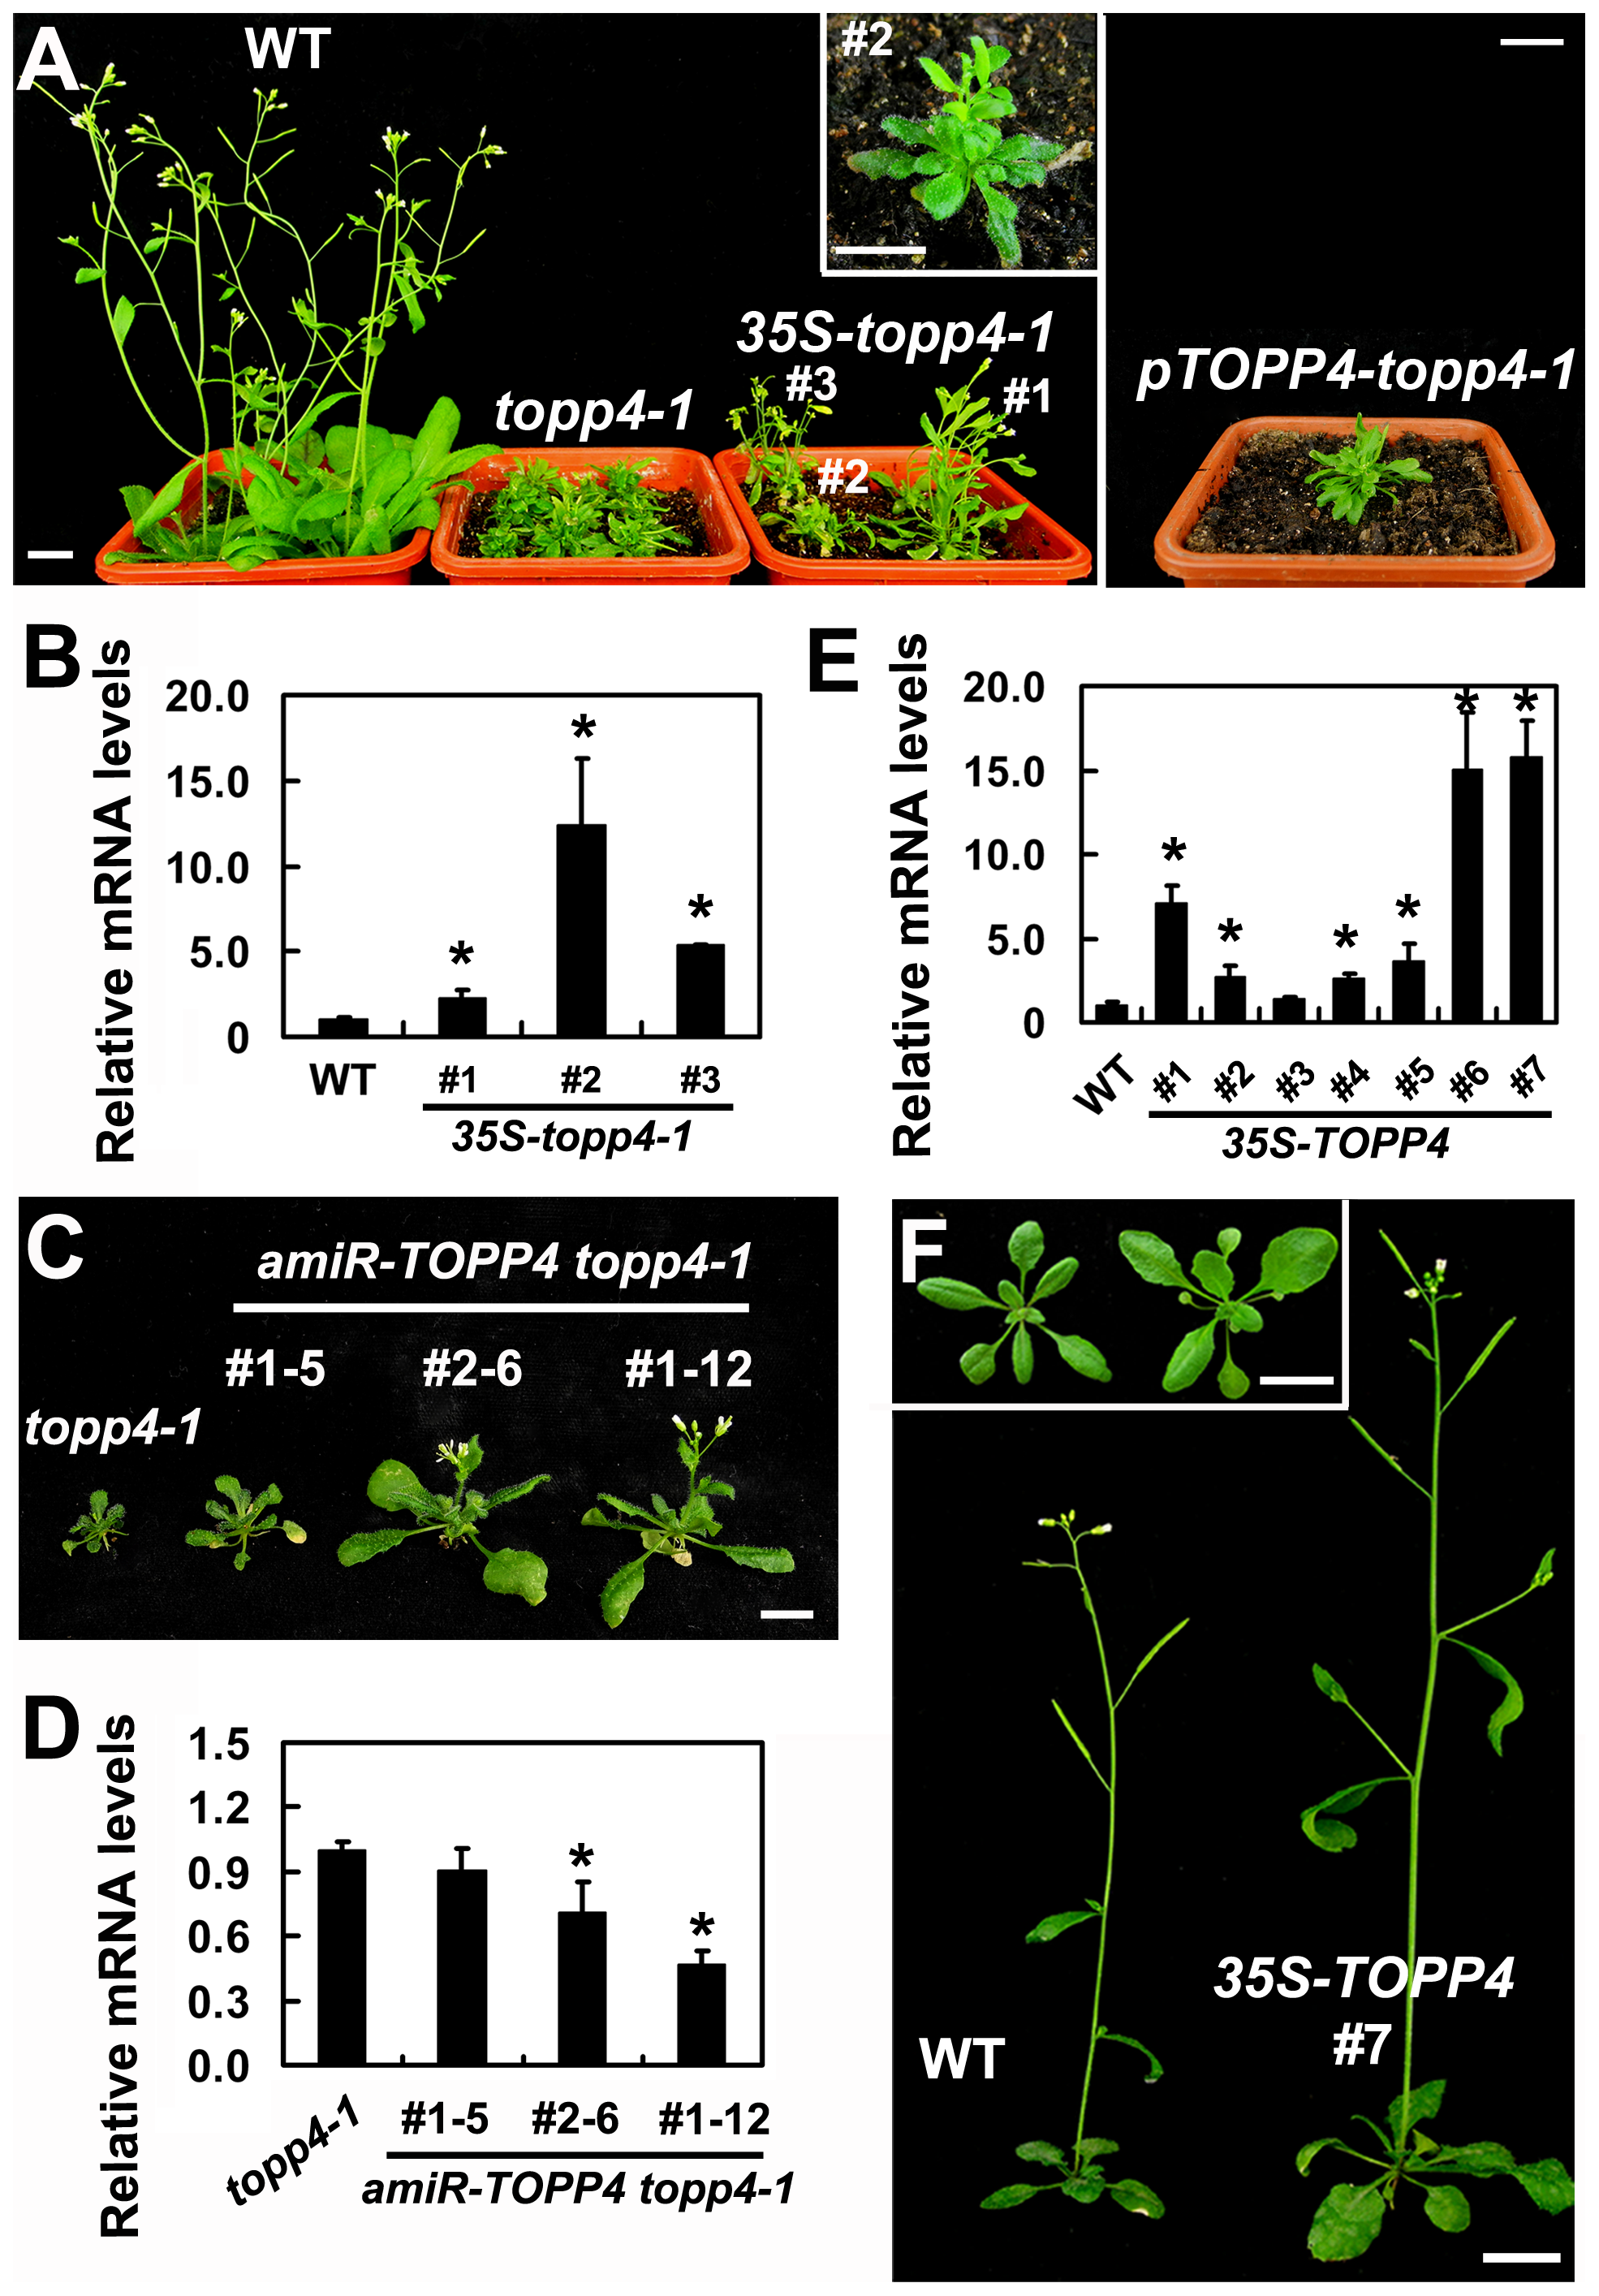 Expression of <i>35S-topp4-1</i>, <i>pTOPP4-topp4-1</i>, or <i>35S-TOPP4</i> in wild-type plants.